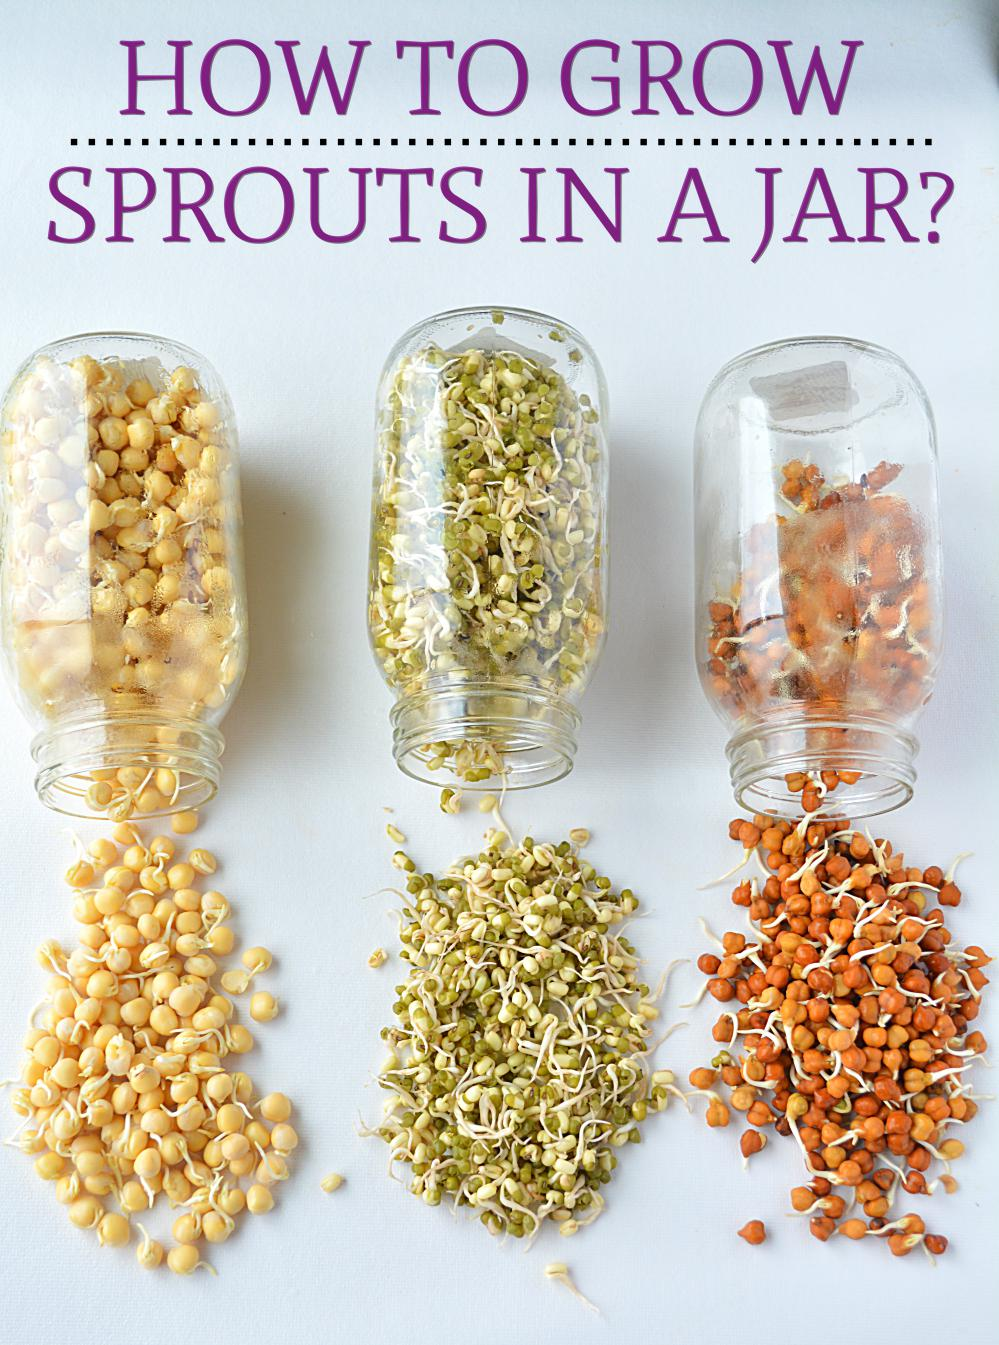 sprouts-in-a-jar-2